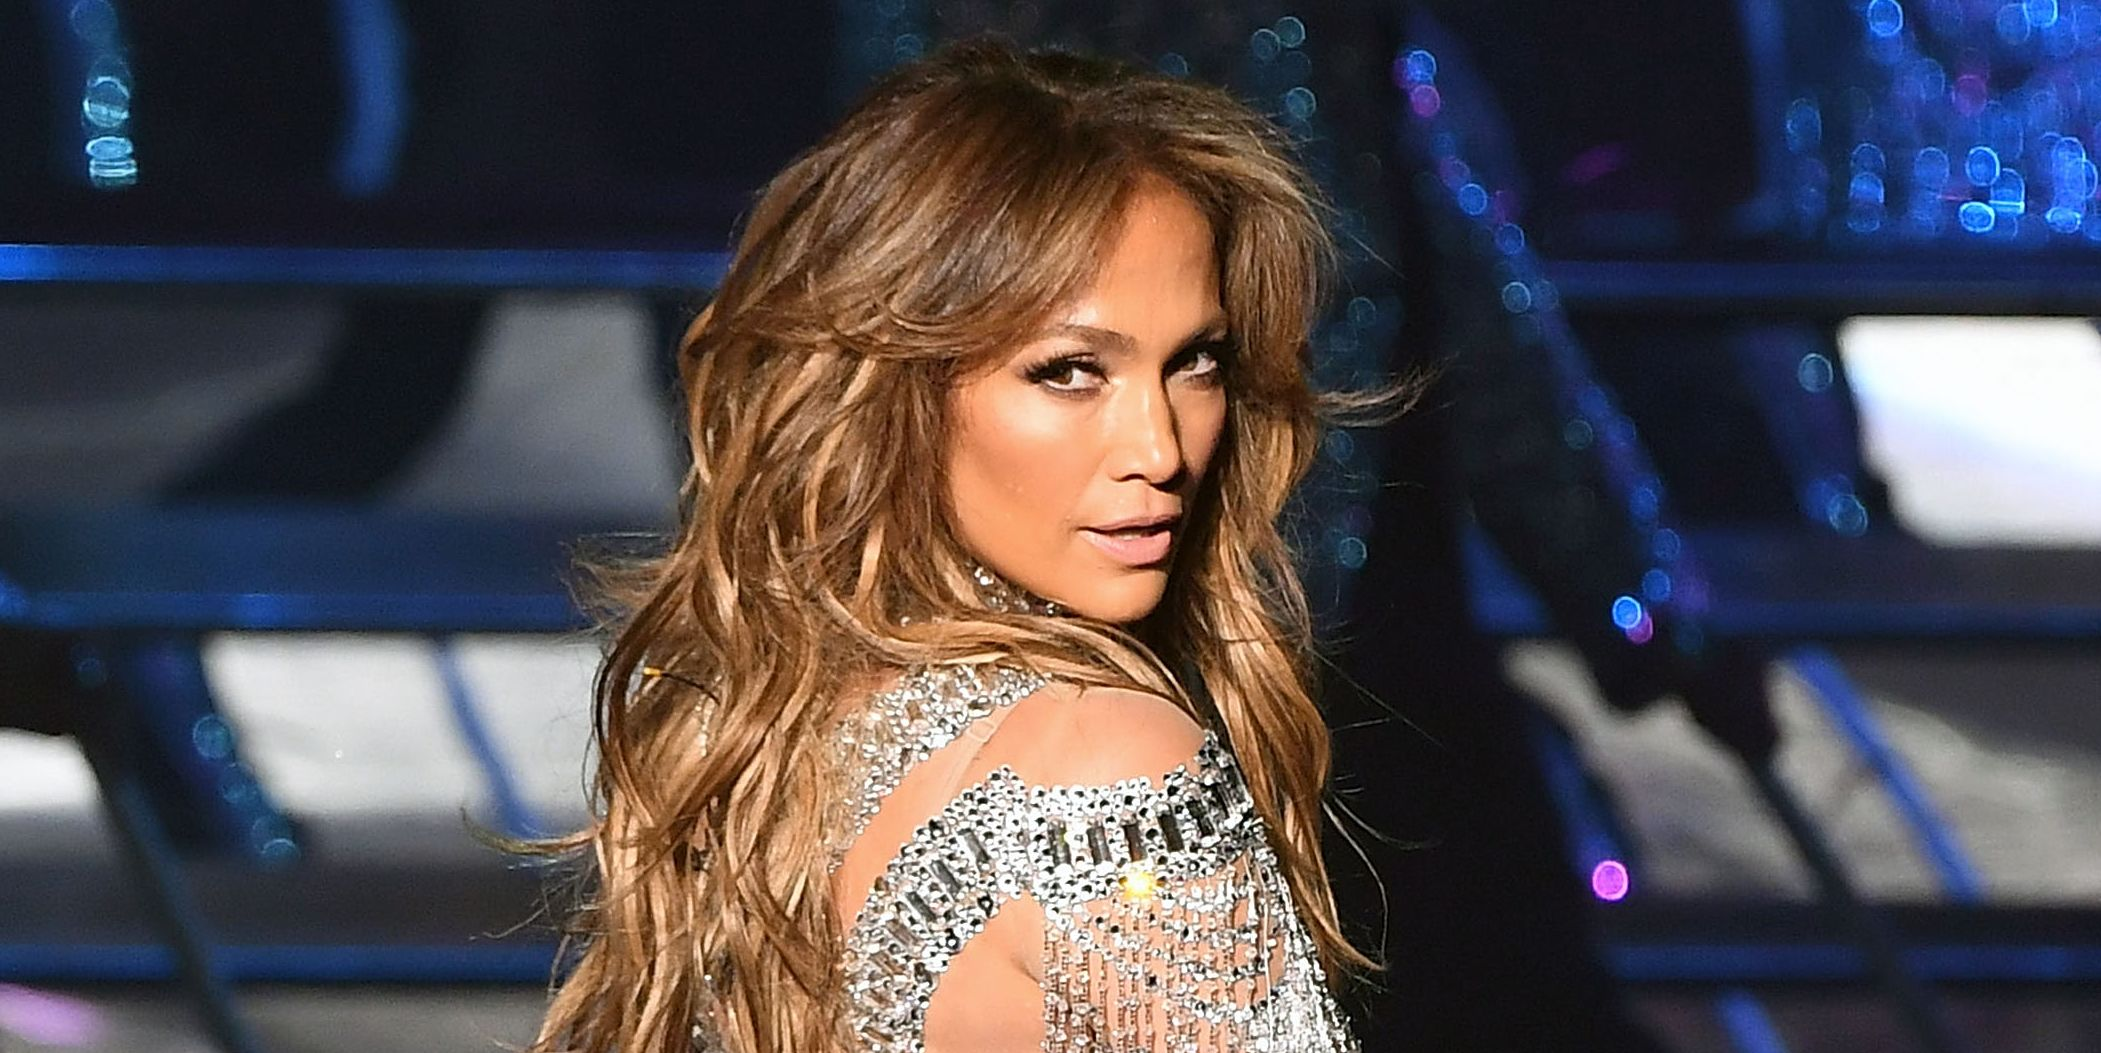 J.Lo Is Celebrating Her 50th Birthday in the Splashiest Way—and You Could Join Her